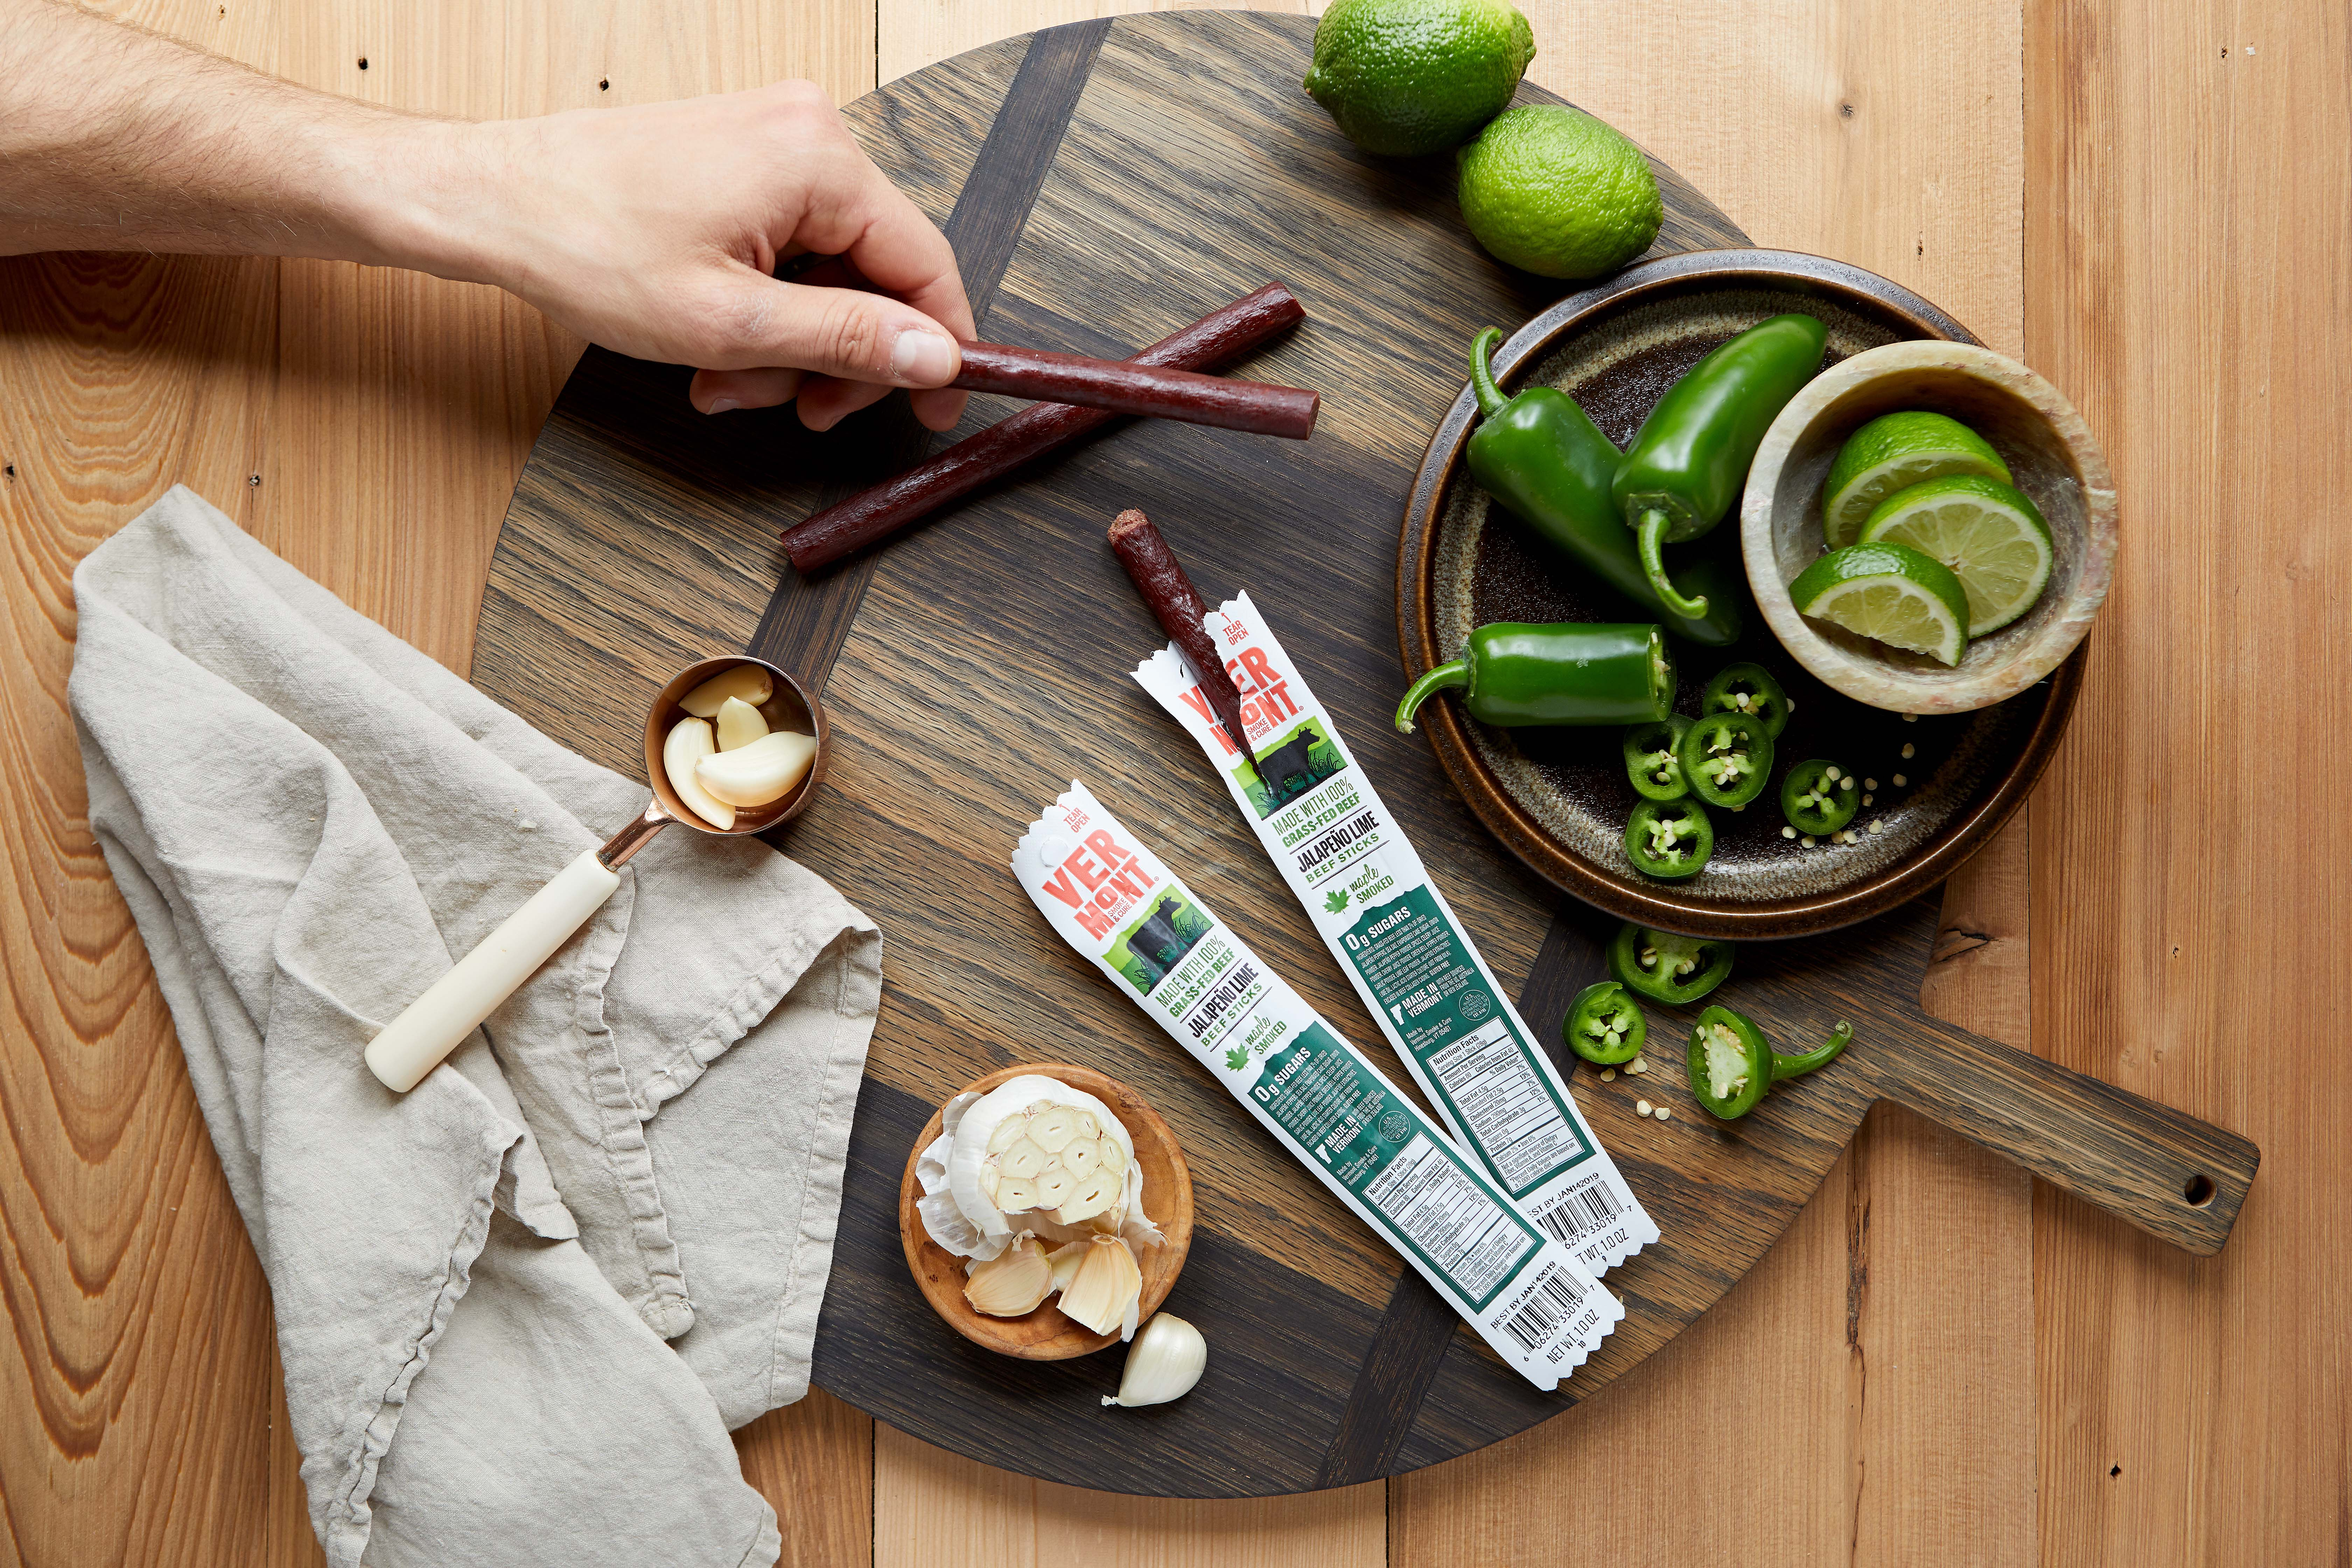 Vermont Smoke & Cure Grass-Fed Jalapeño Lime Beef Sticks